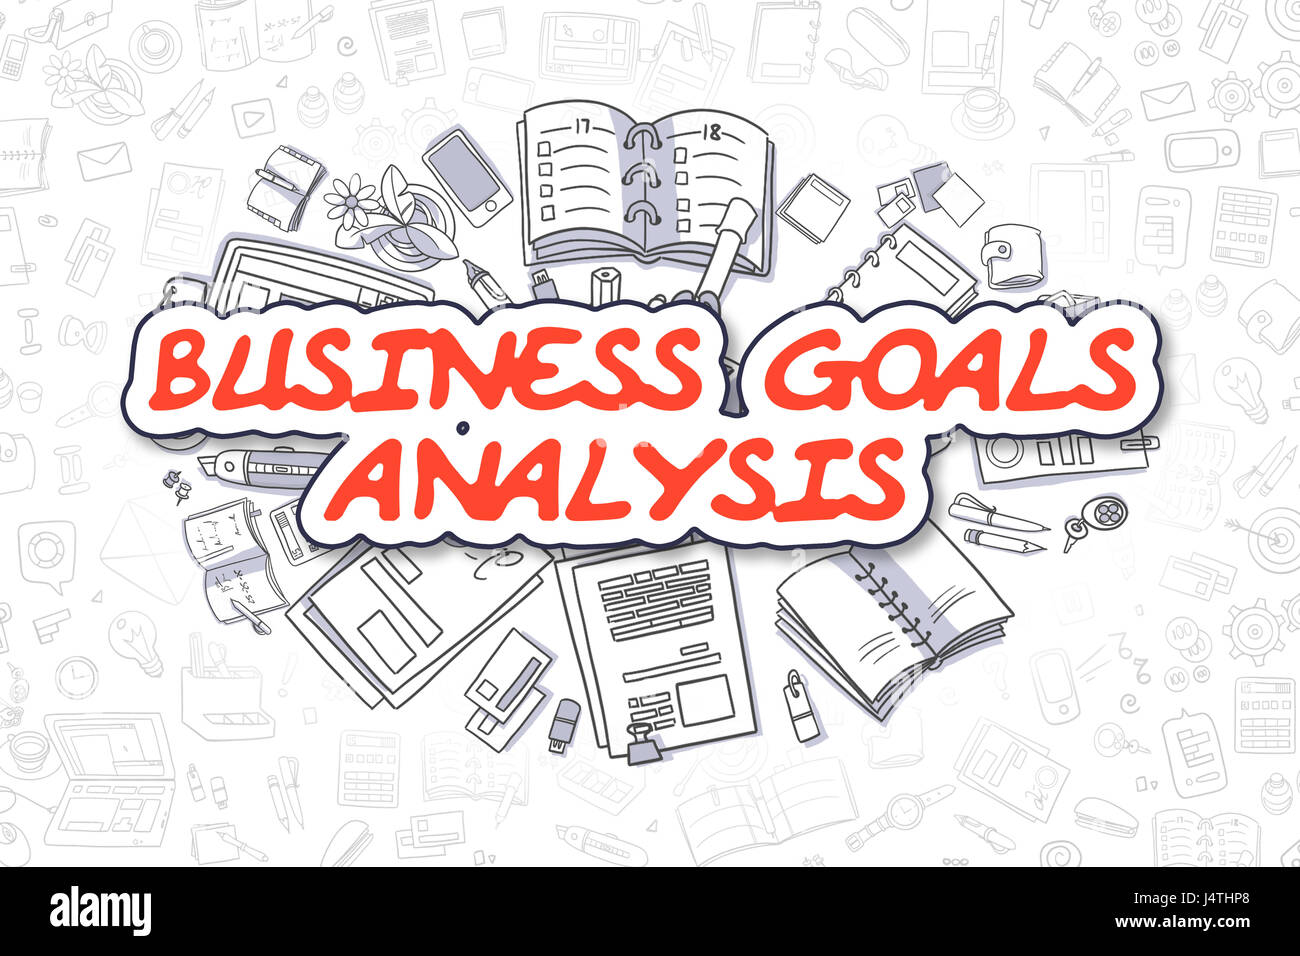 Business Goals Analysis - Doodle Red Text. Business Concept. - Stock Image